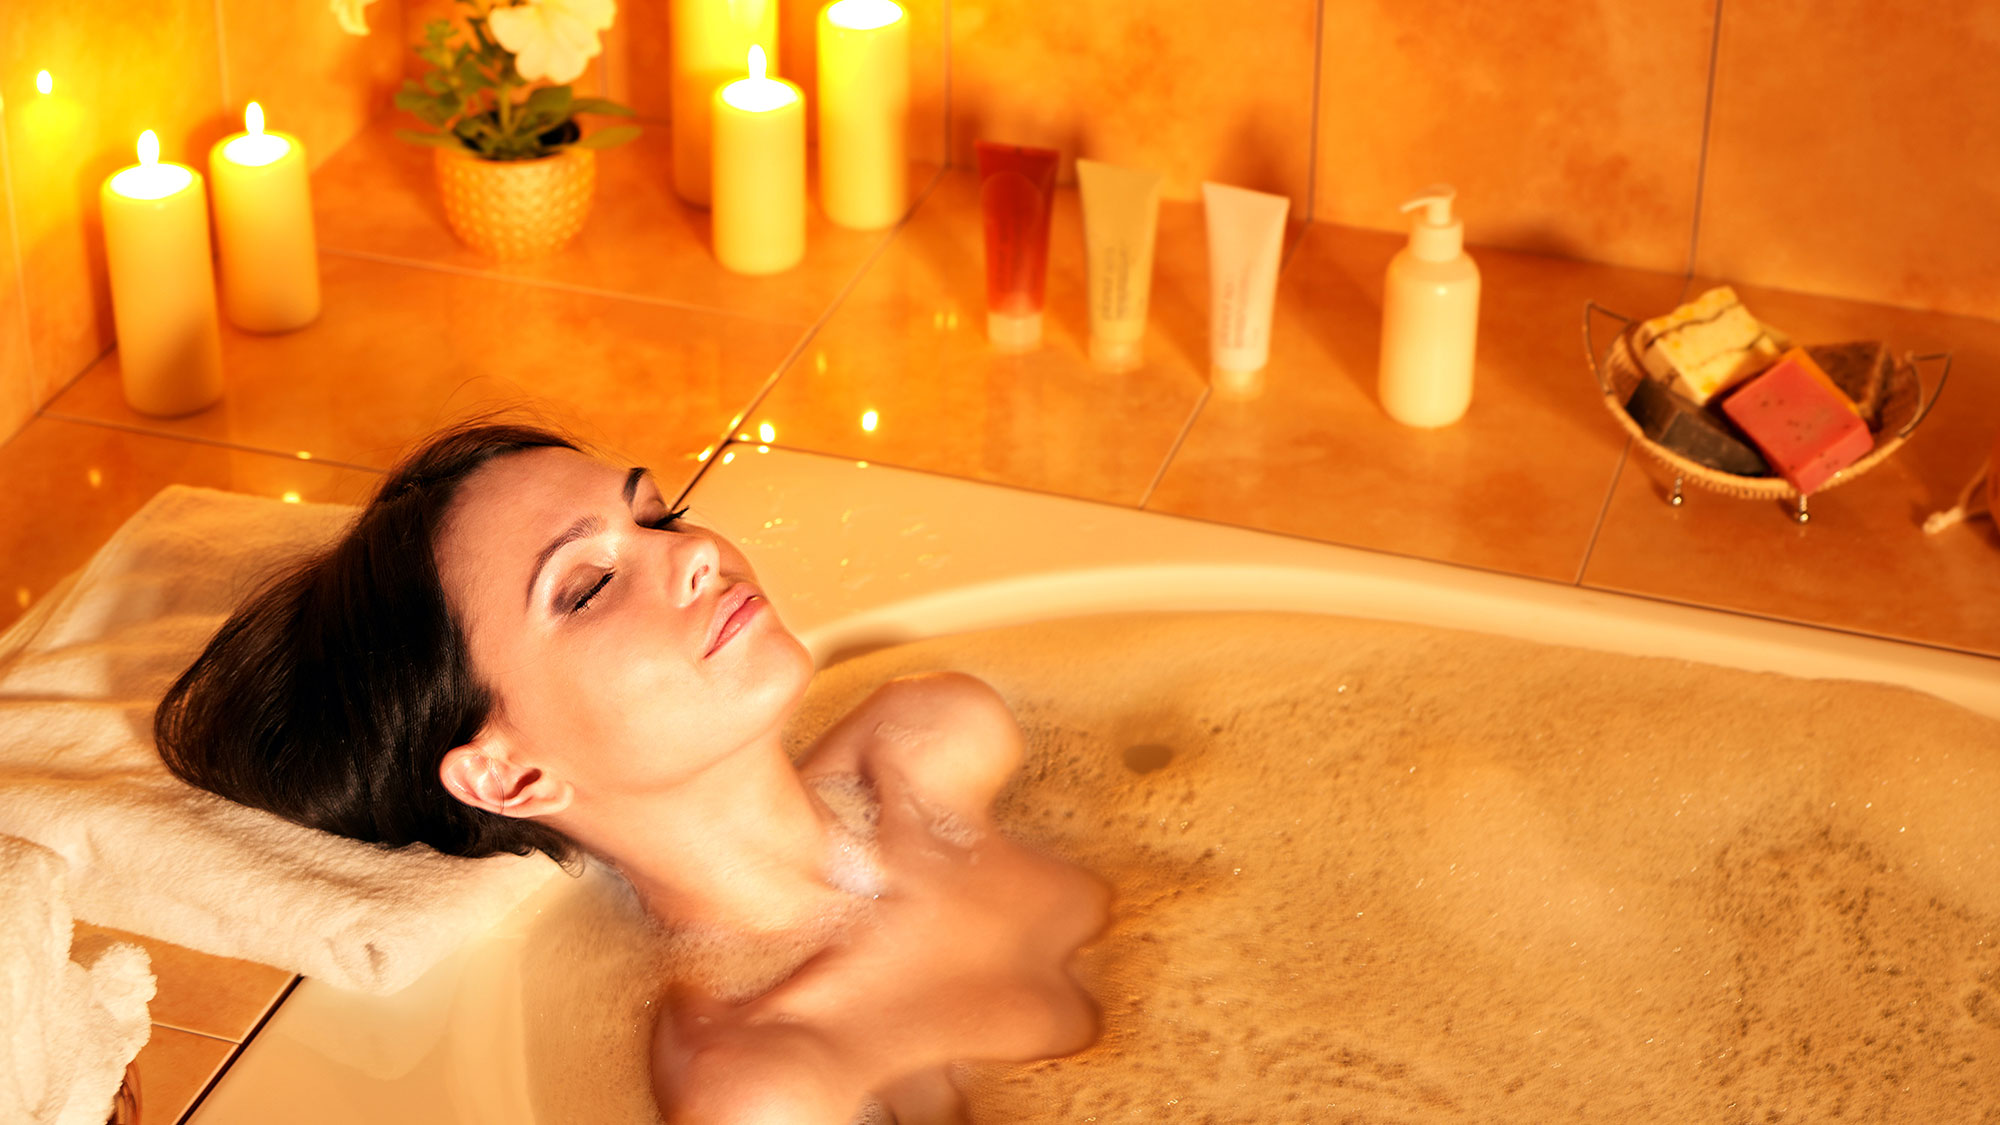 Woman taking a warm bubble bath.